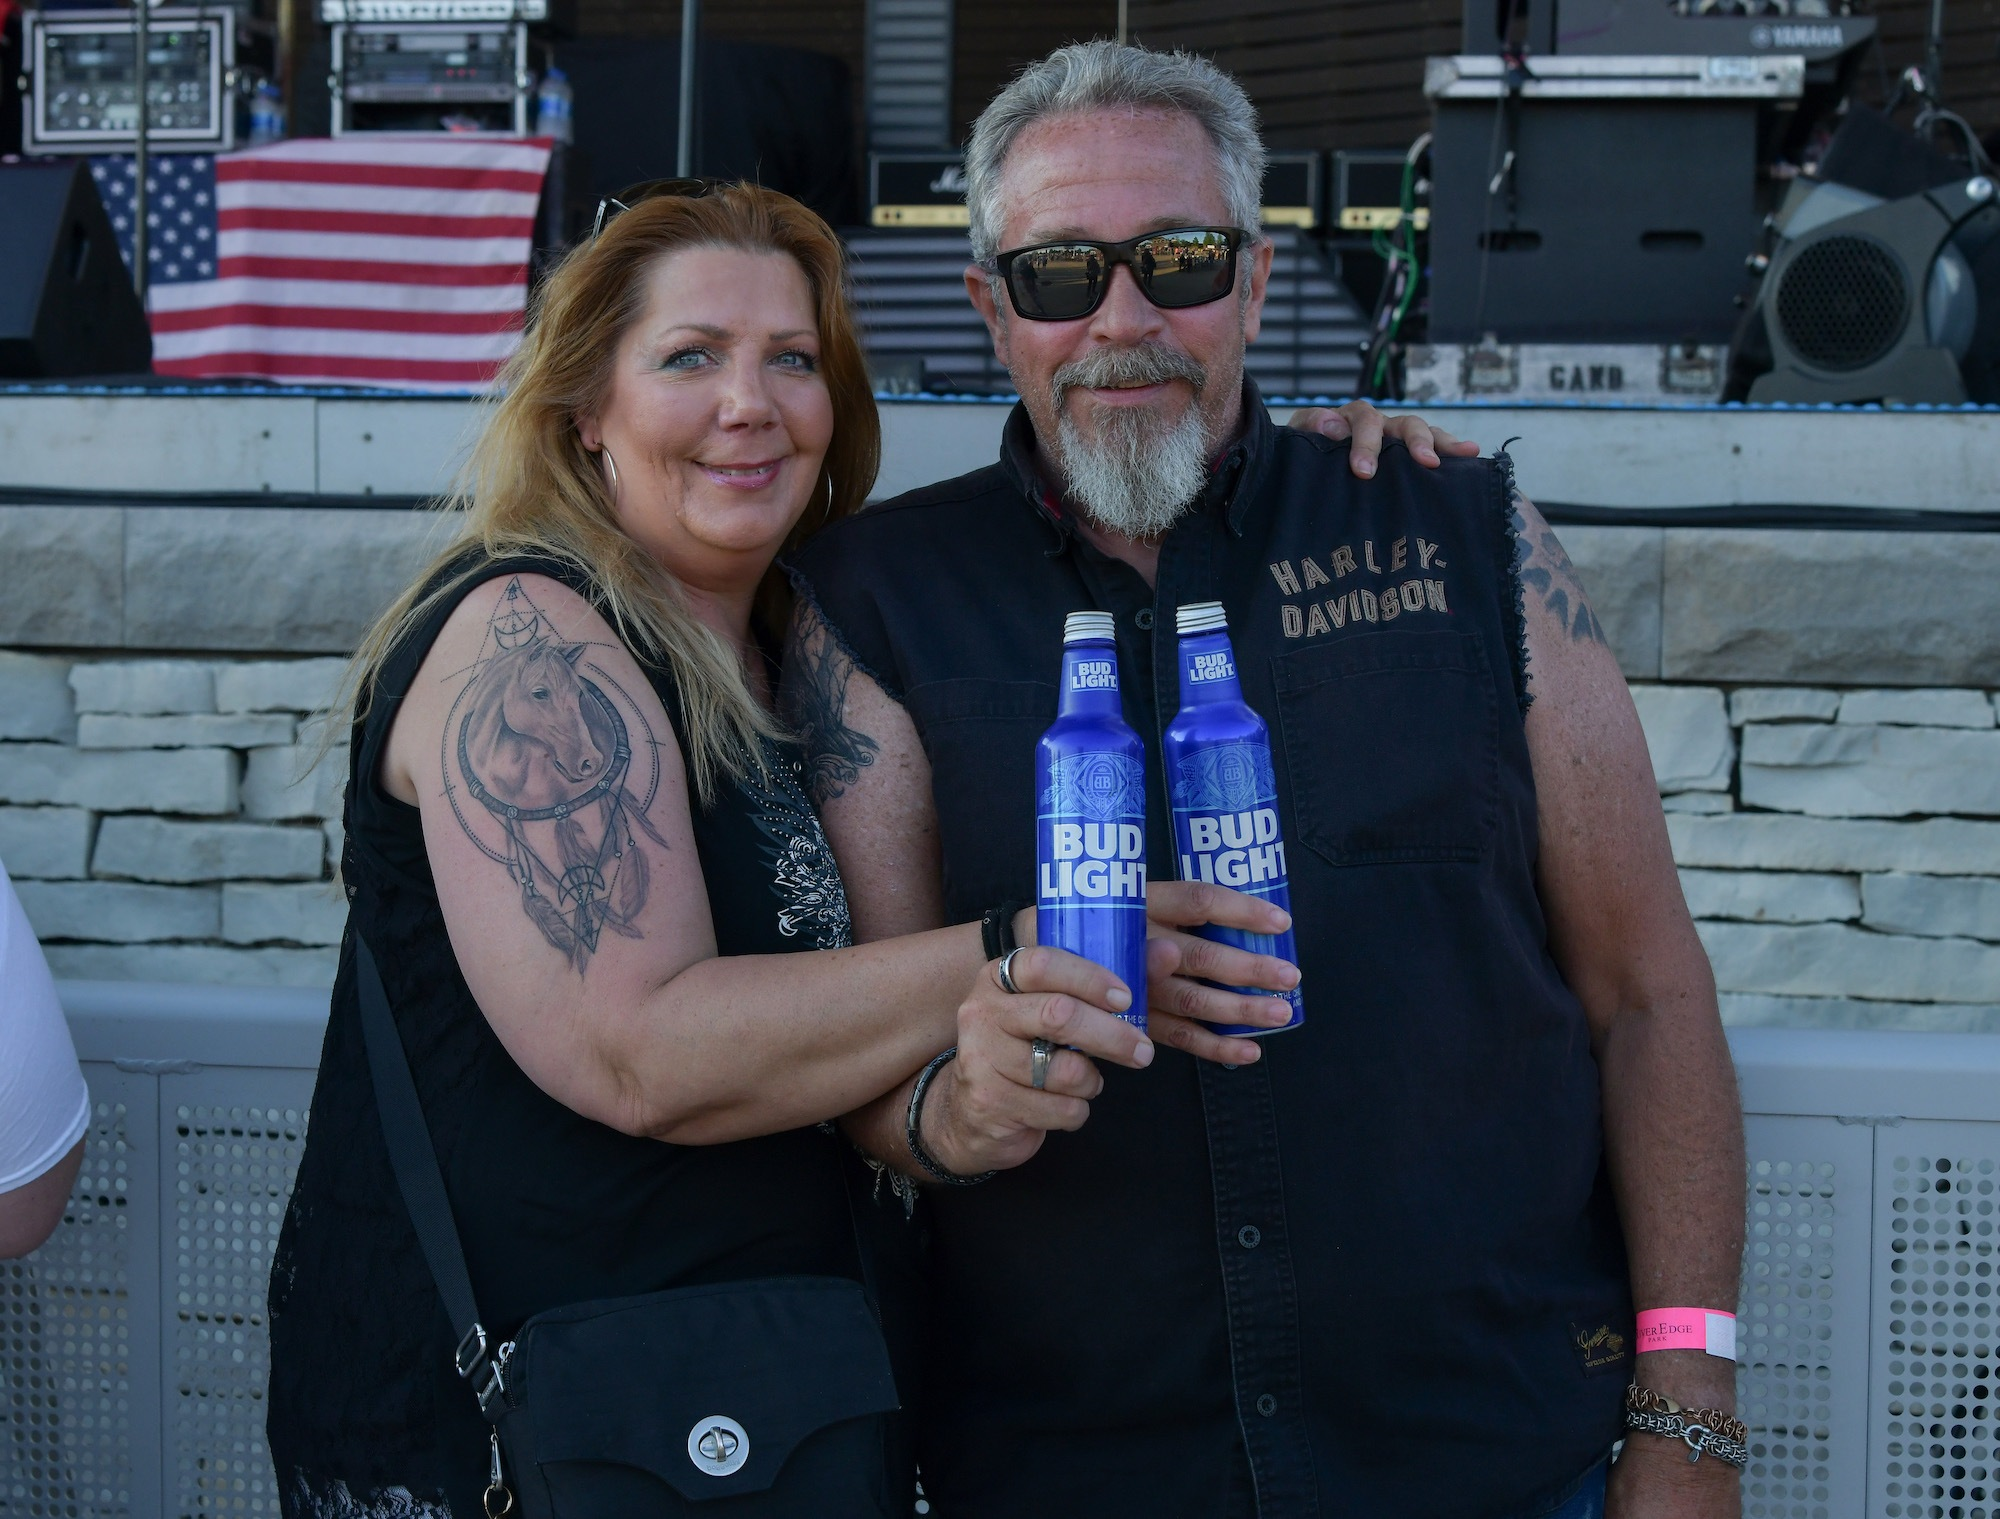 REO Speedwagon Live at RiverEdge Park [GALLERY] 11